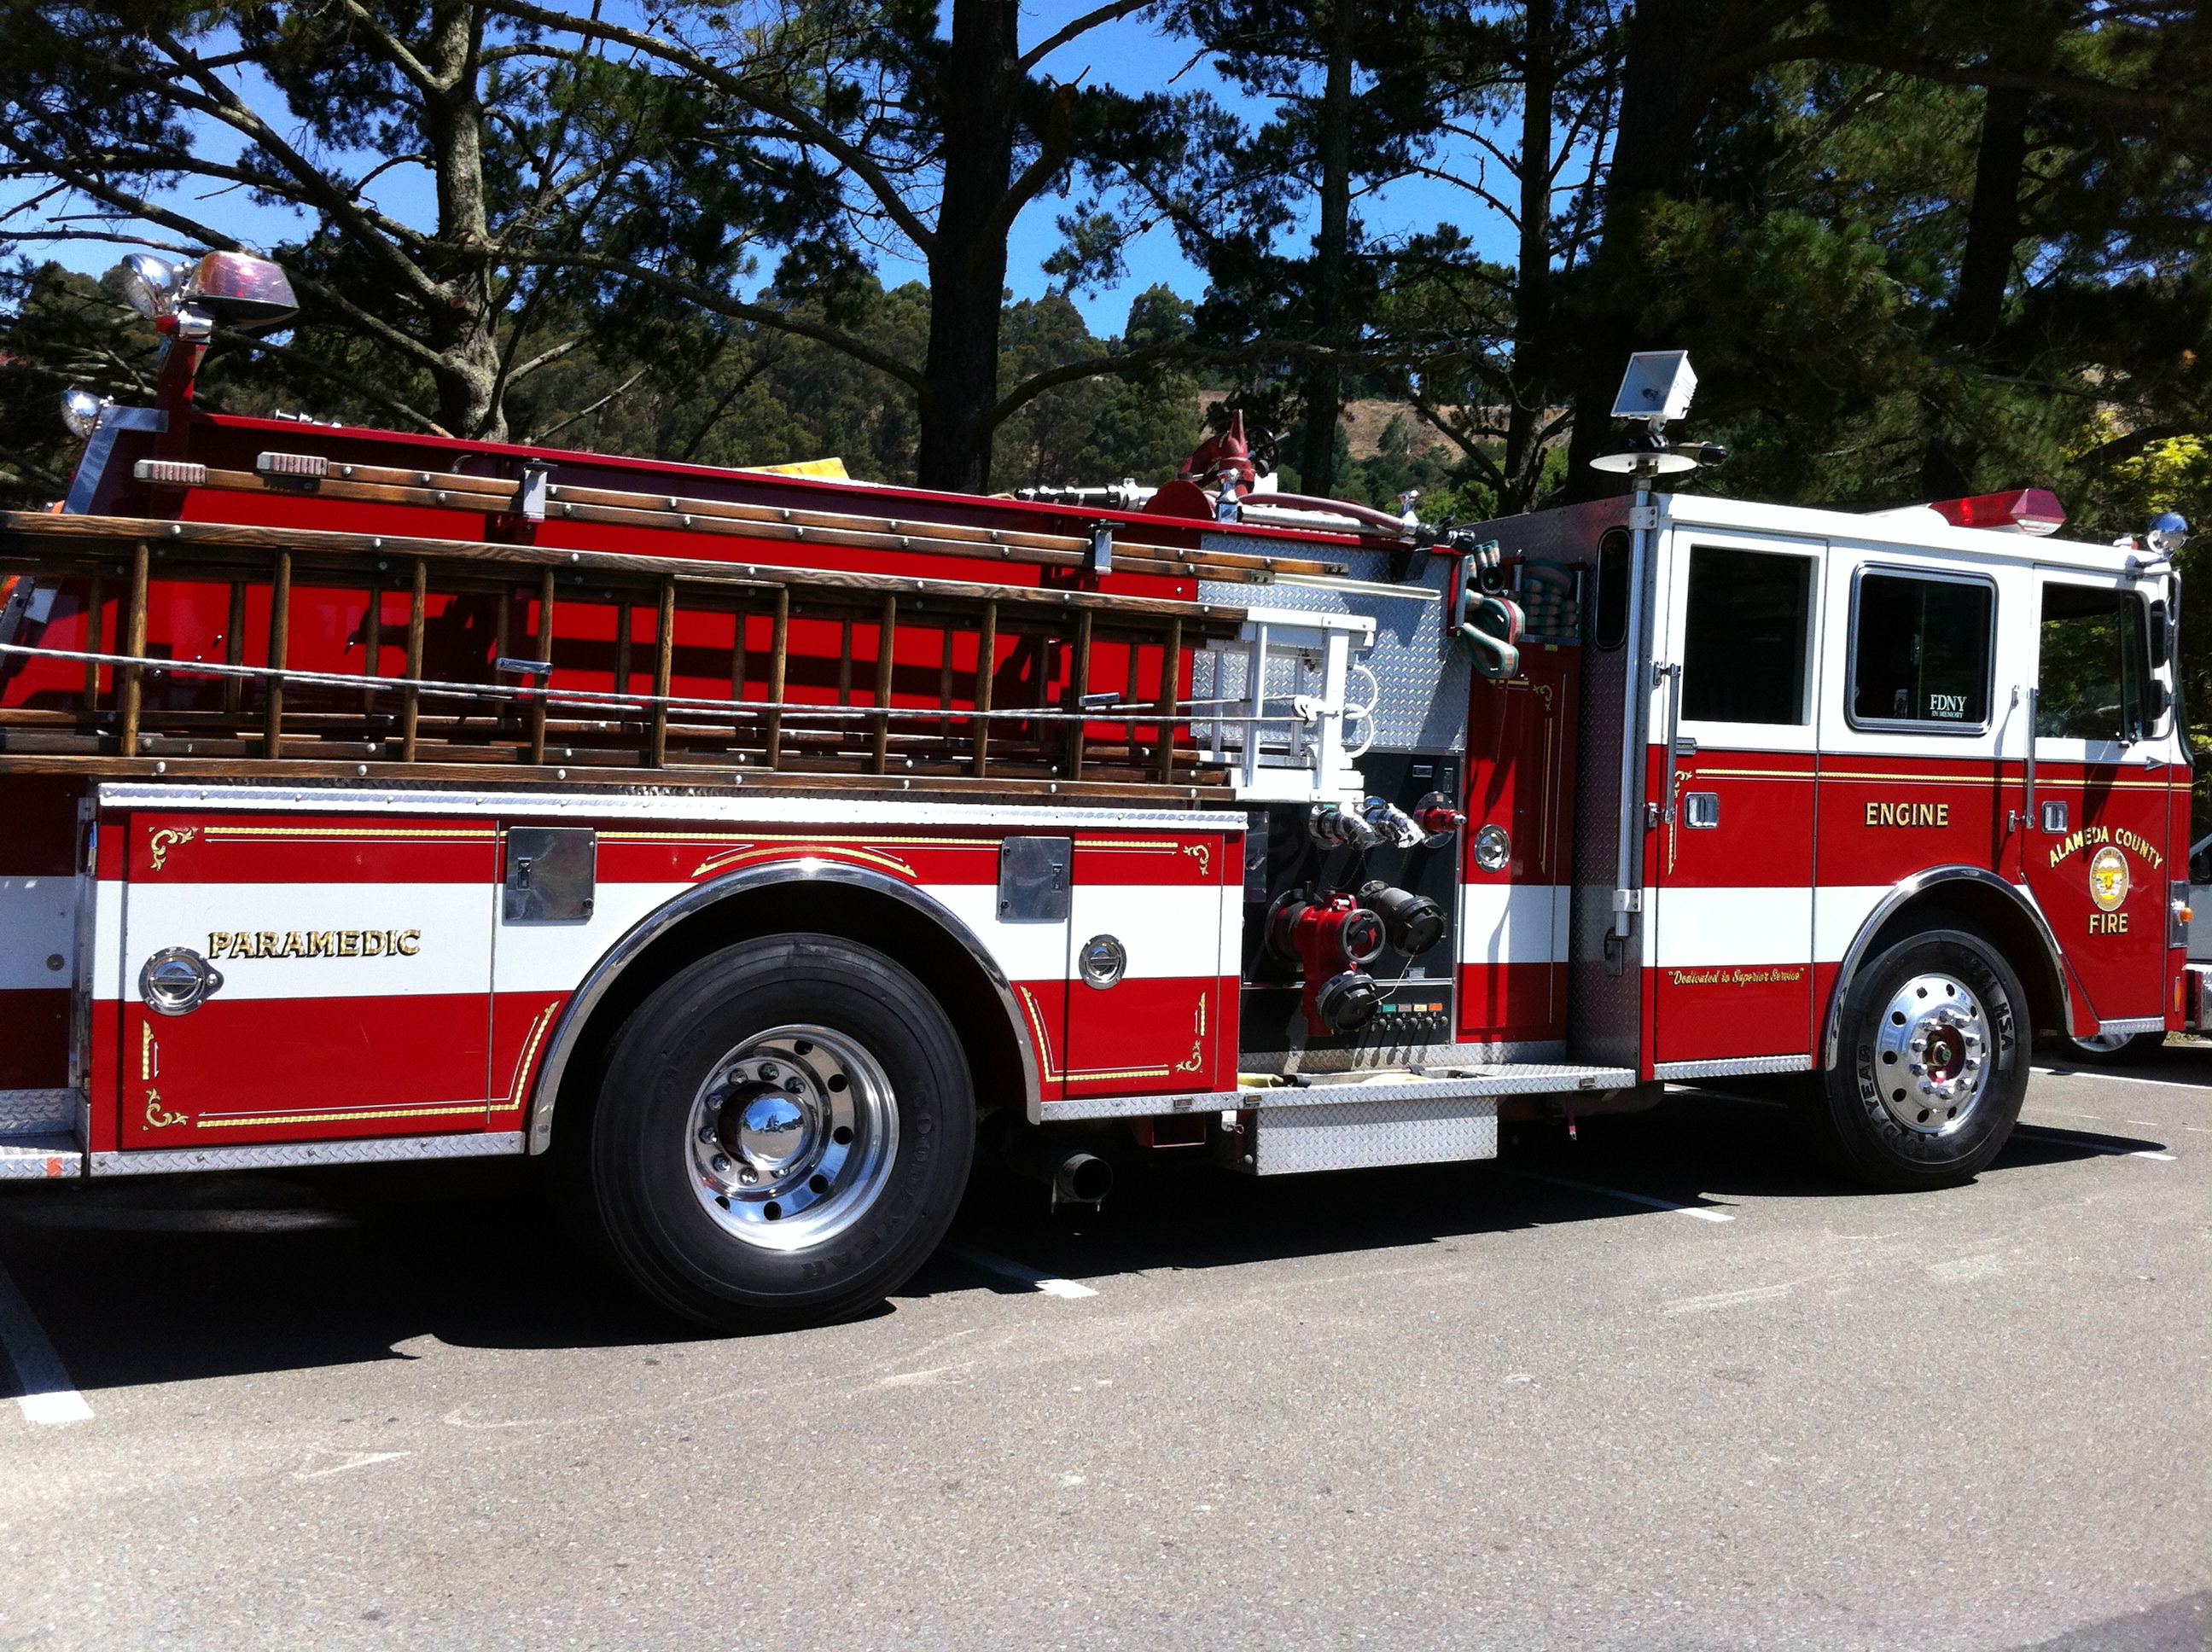 Fire Engine Photo